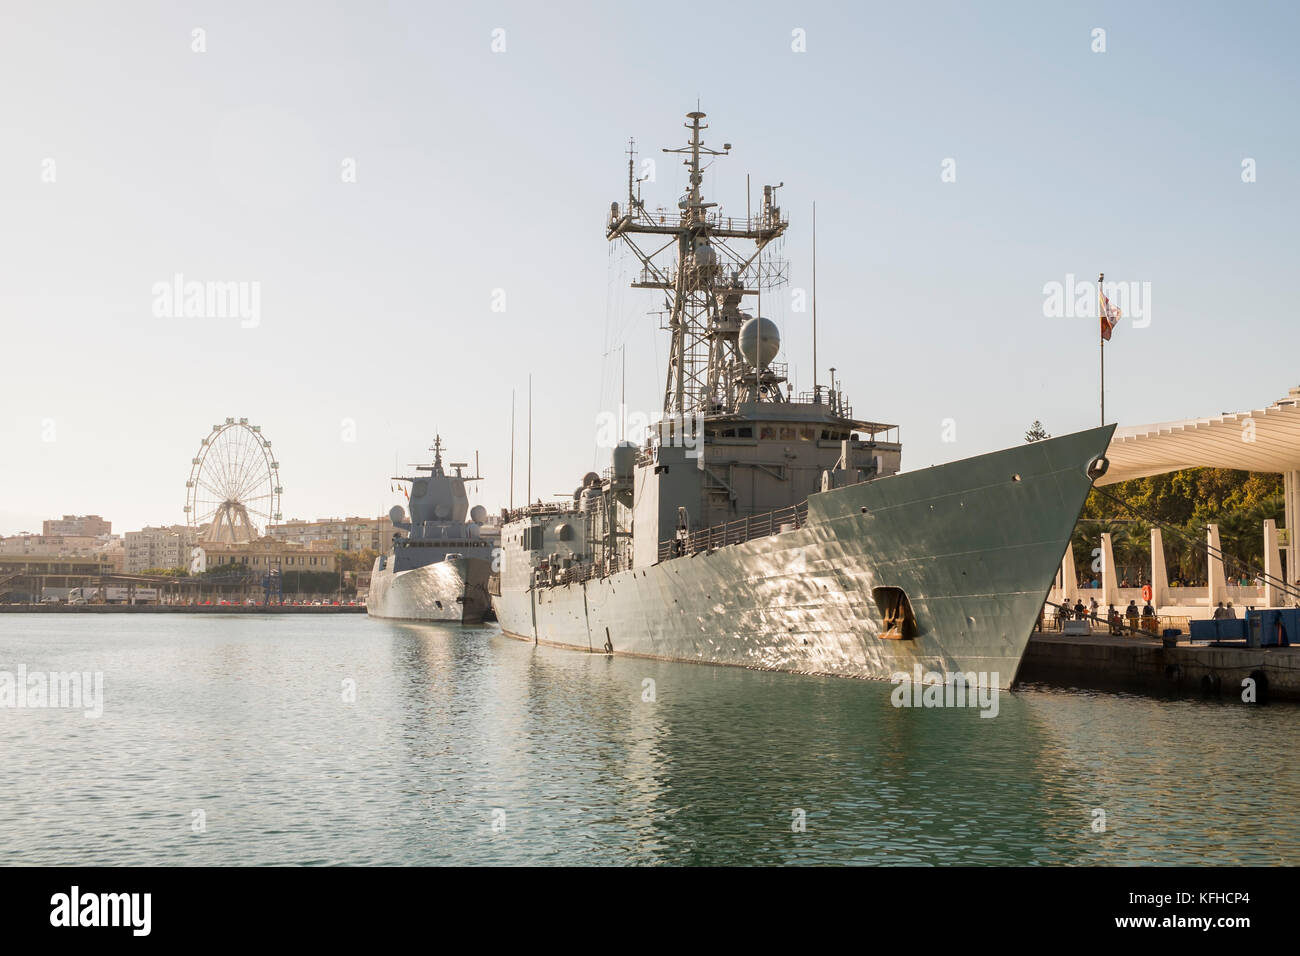 Port of Málaga (Spain). Frigate Numancia (Spain) and the frigate KNM Otto Sverdrup. October, 29th 2017. - Stock Image